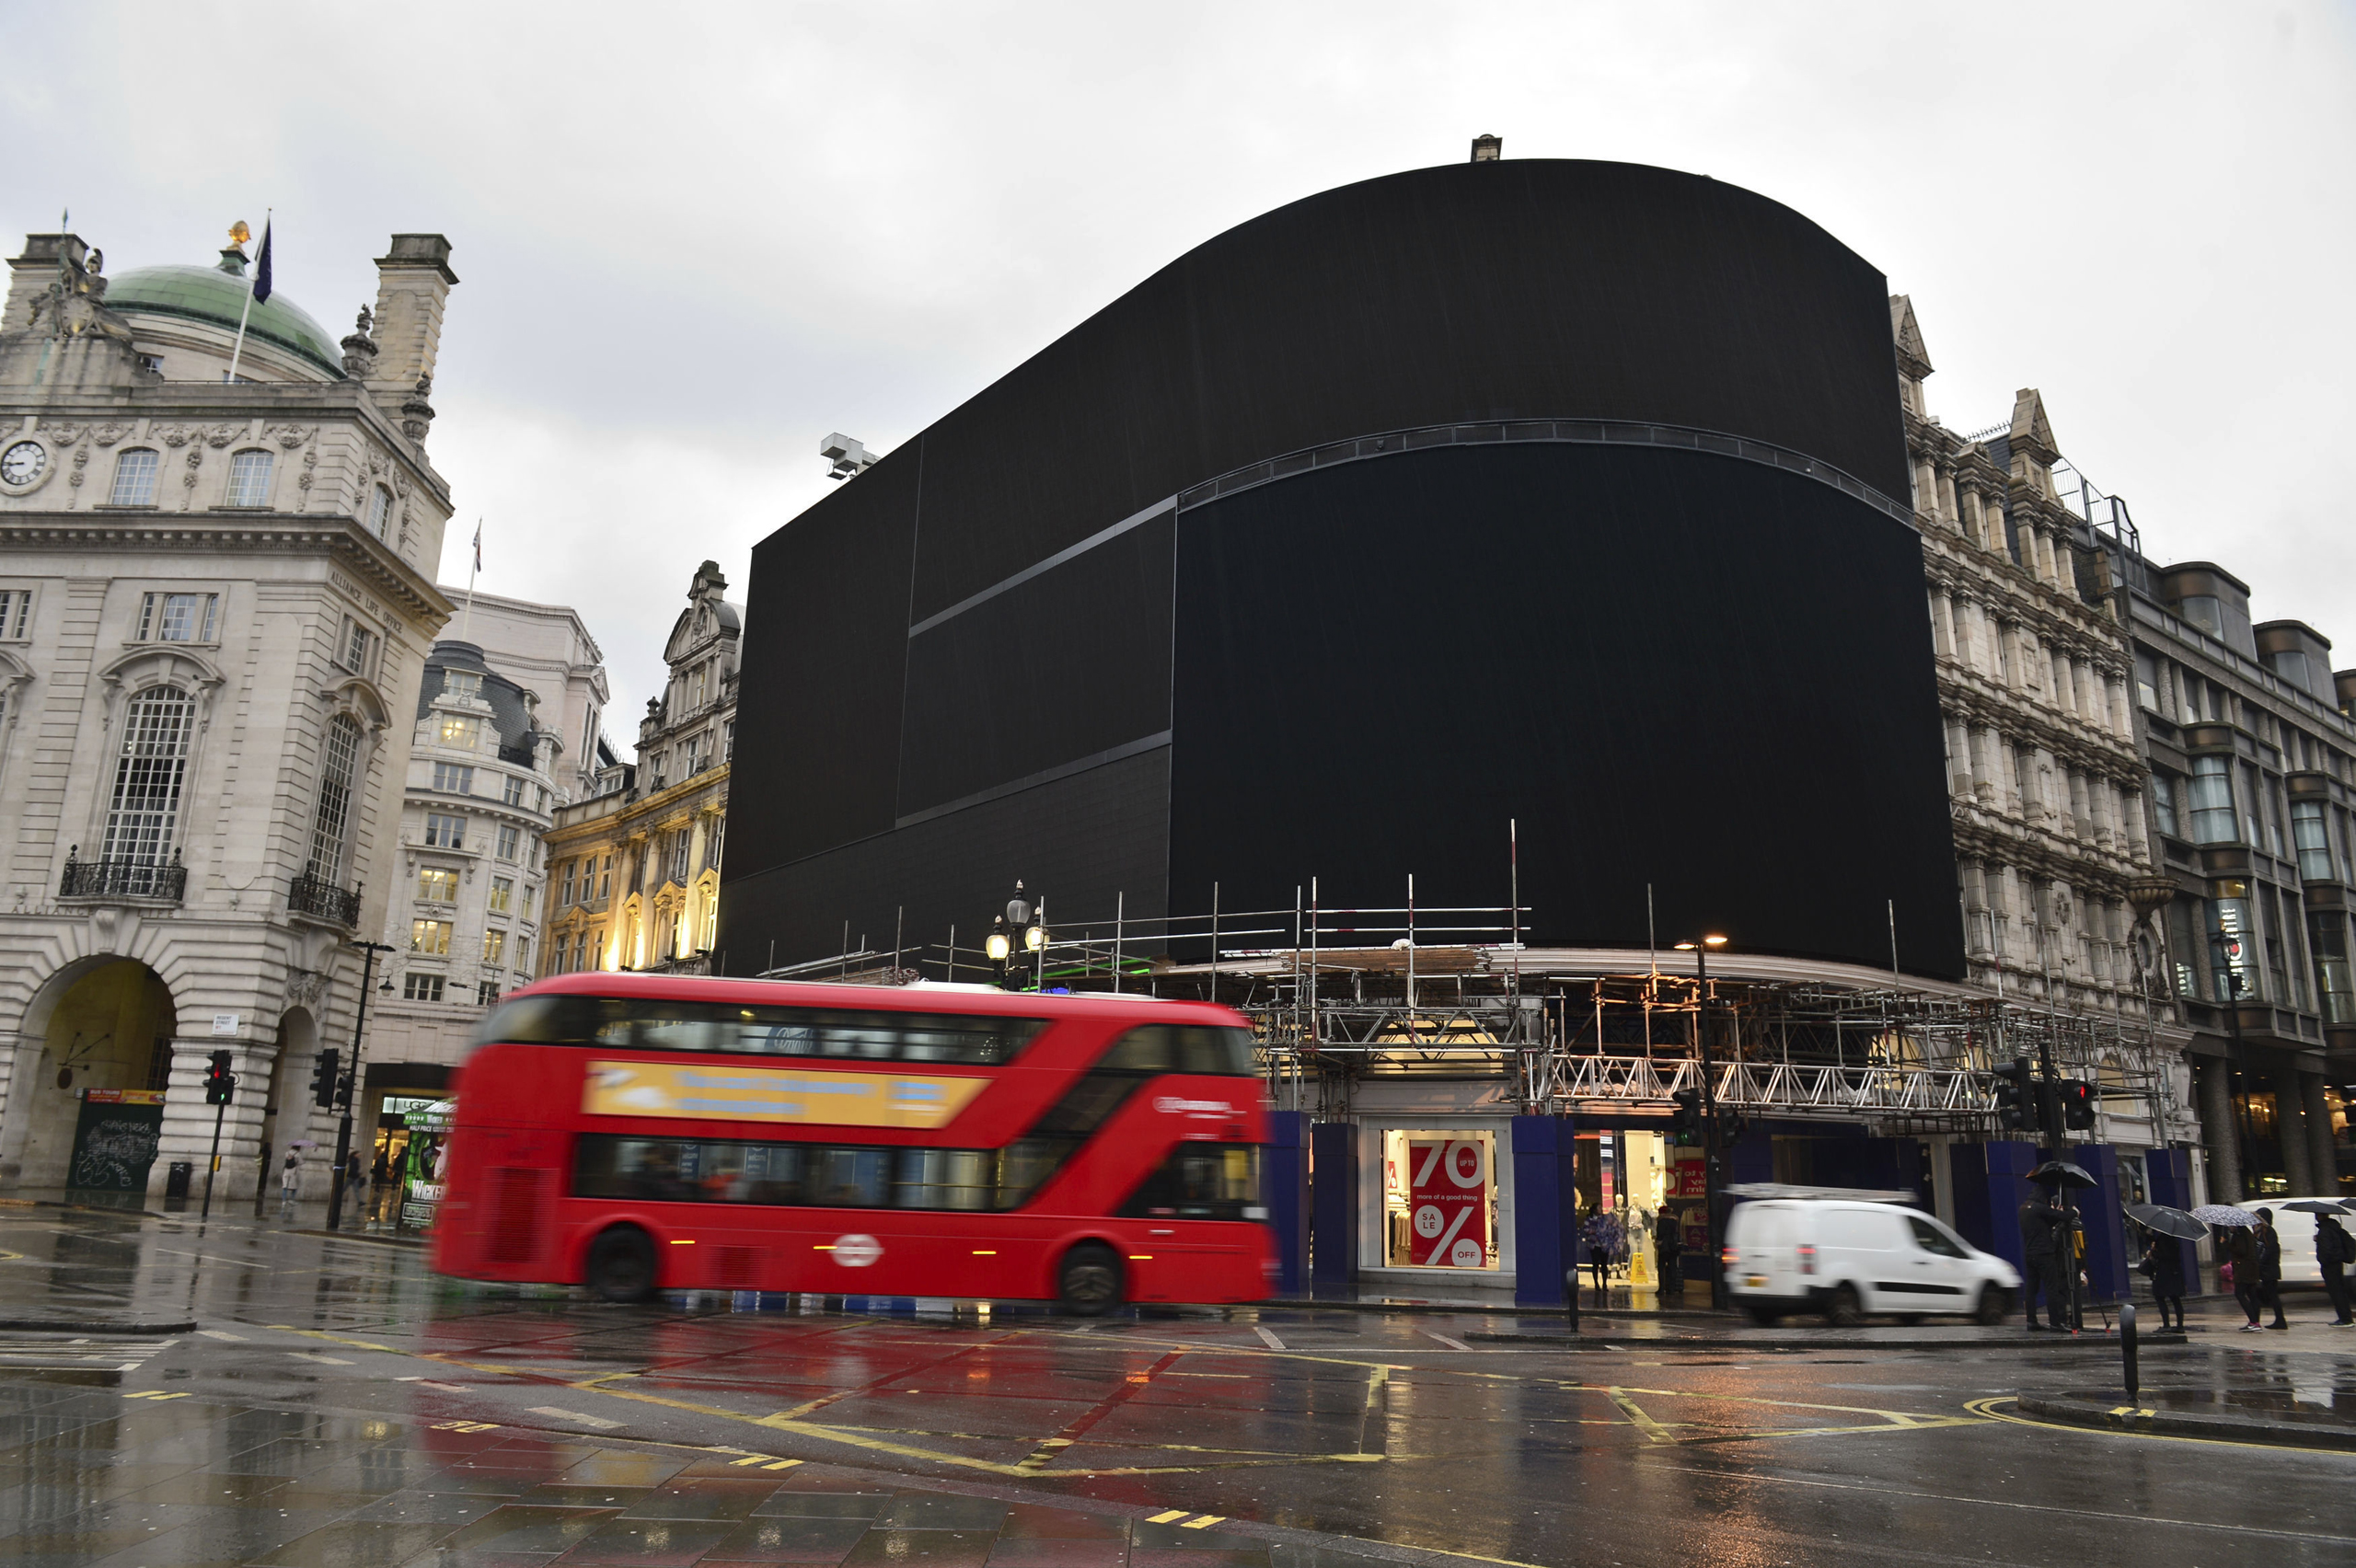 The advertising screens at Piccadilly Circus, central London, after they were switched off in preparation for redevelopment on Jan.  16, 2017.